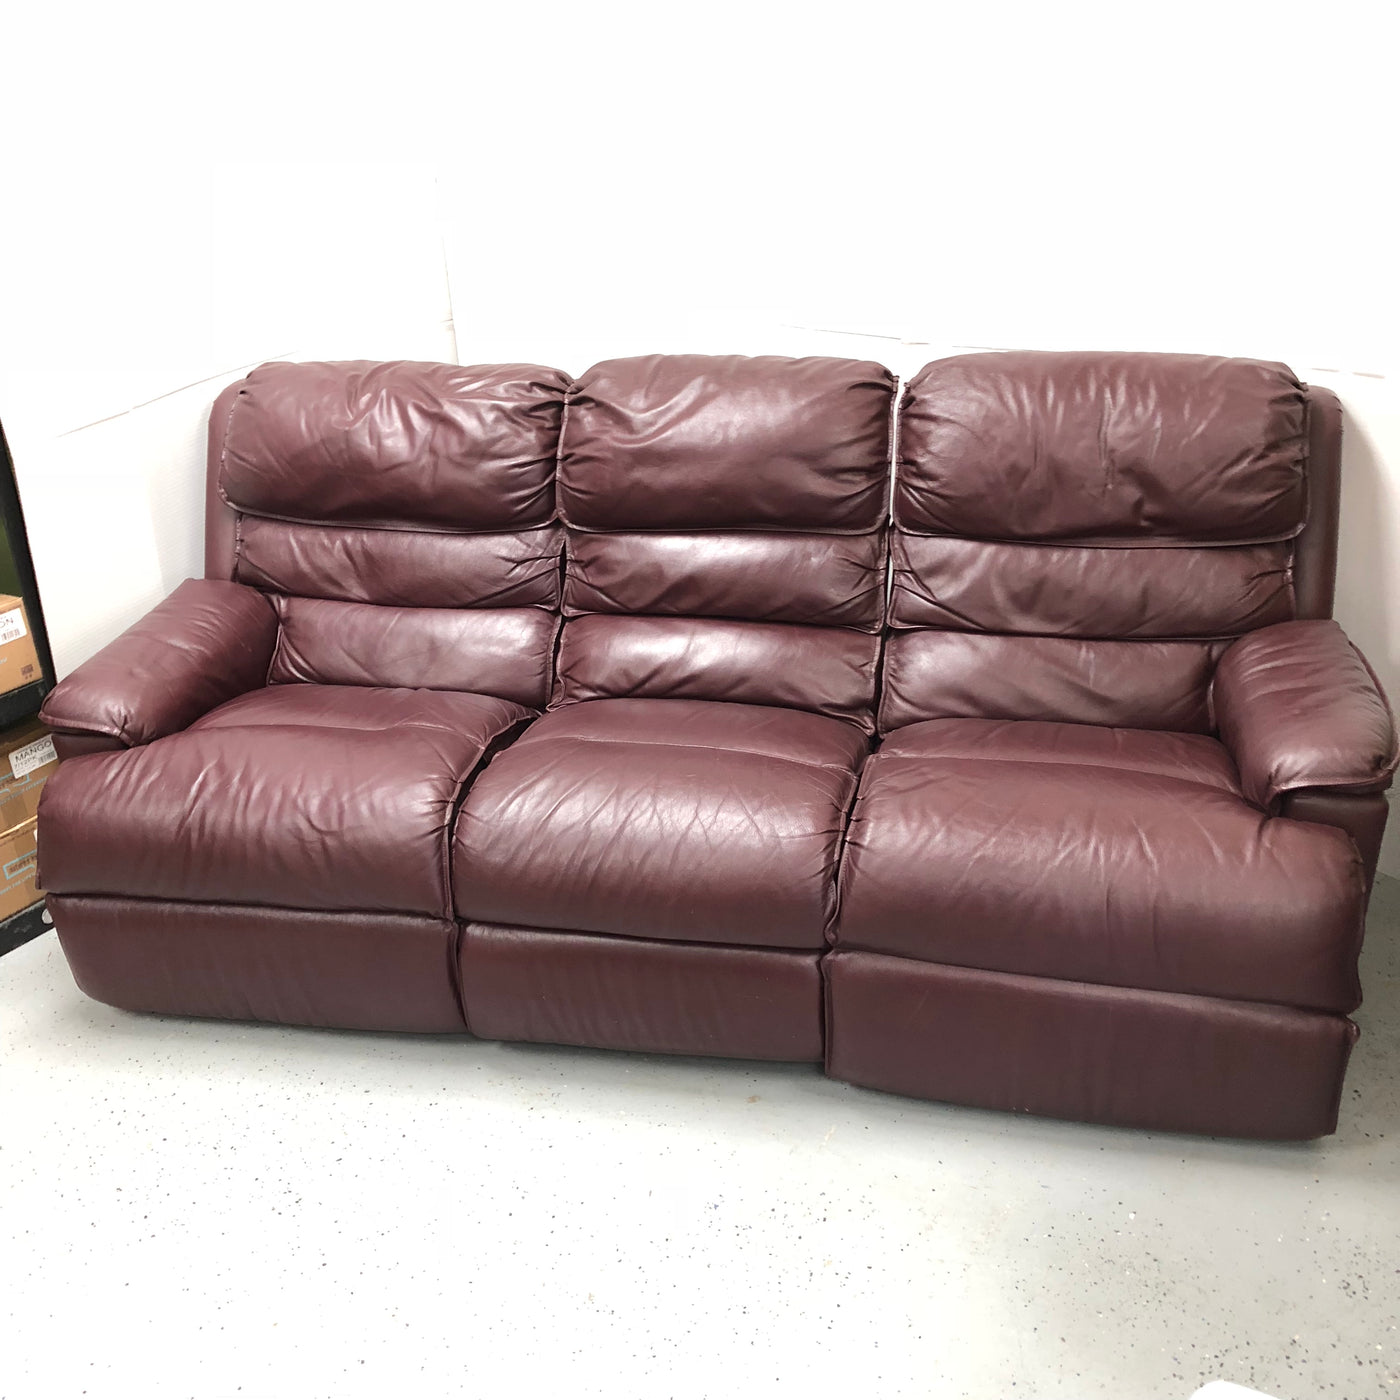 Red Double Reclining Leather 3 Seat Sofa Couch M15sales Com